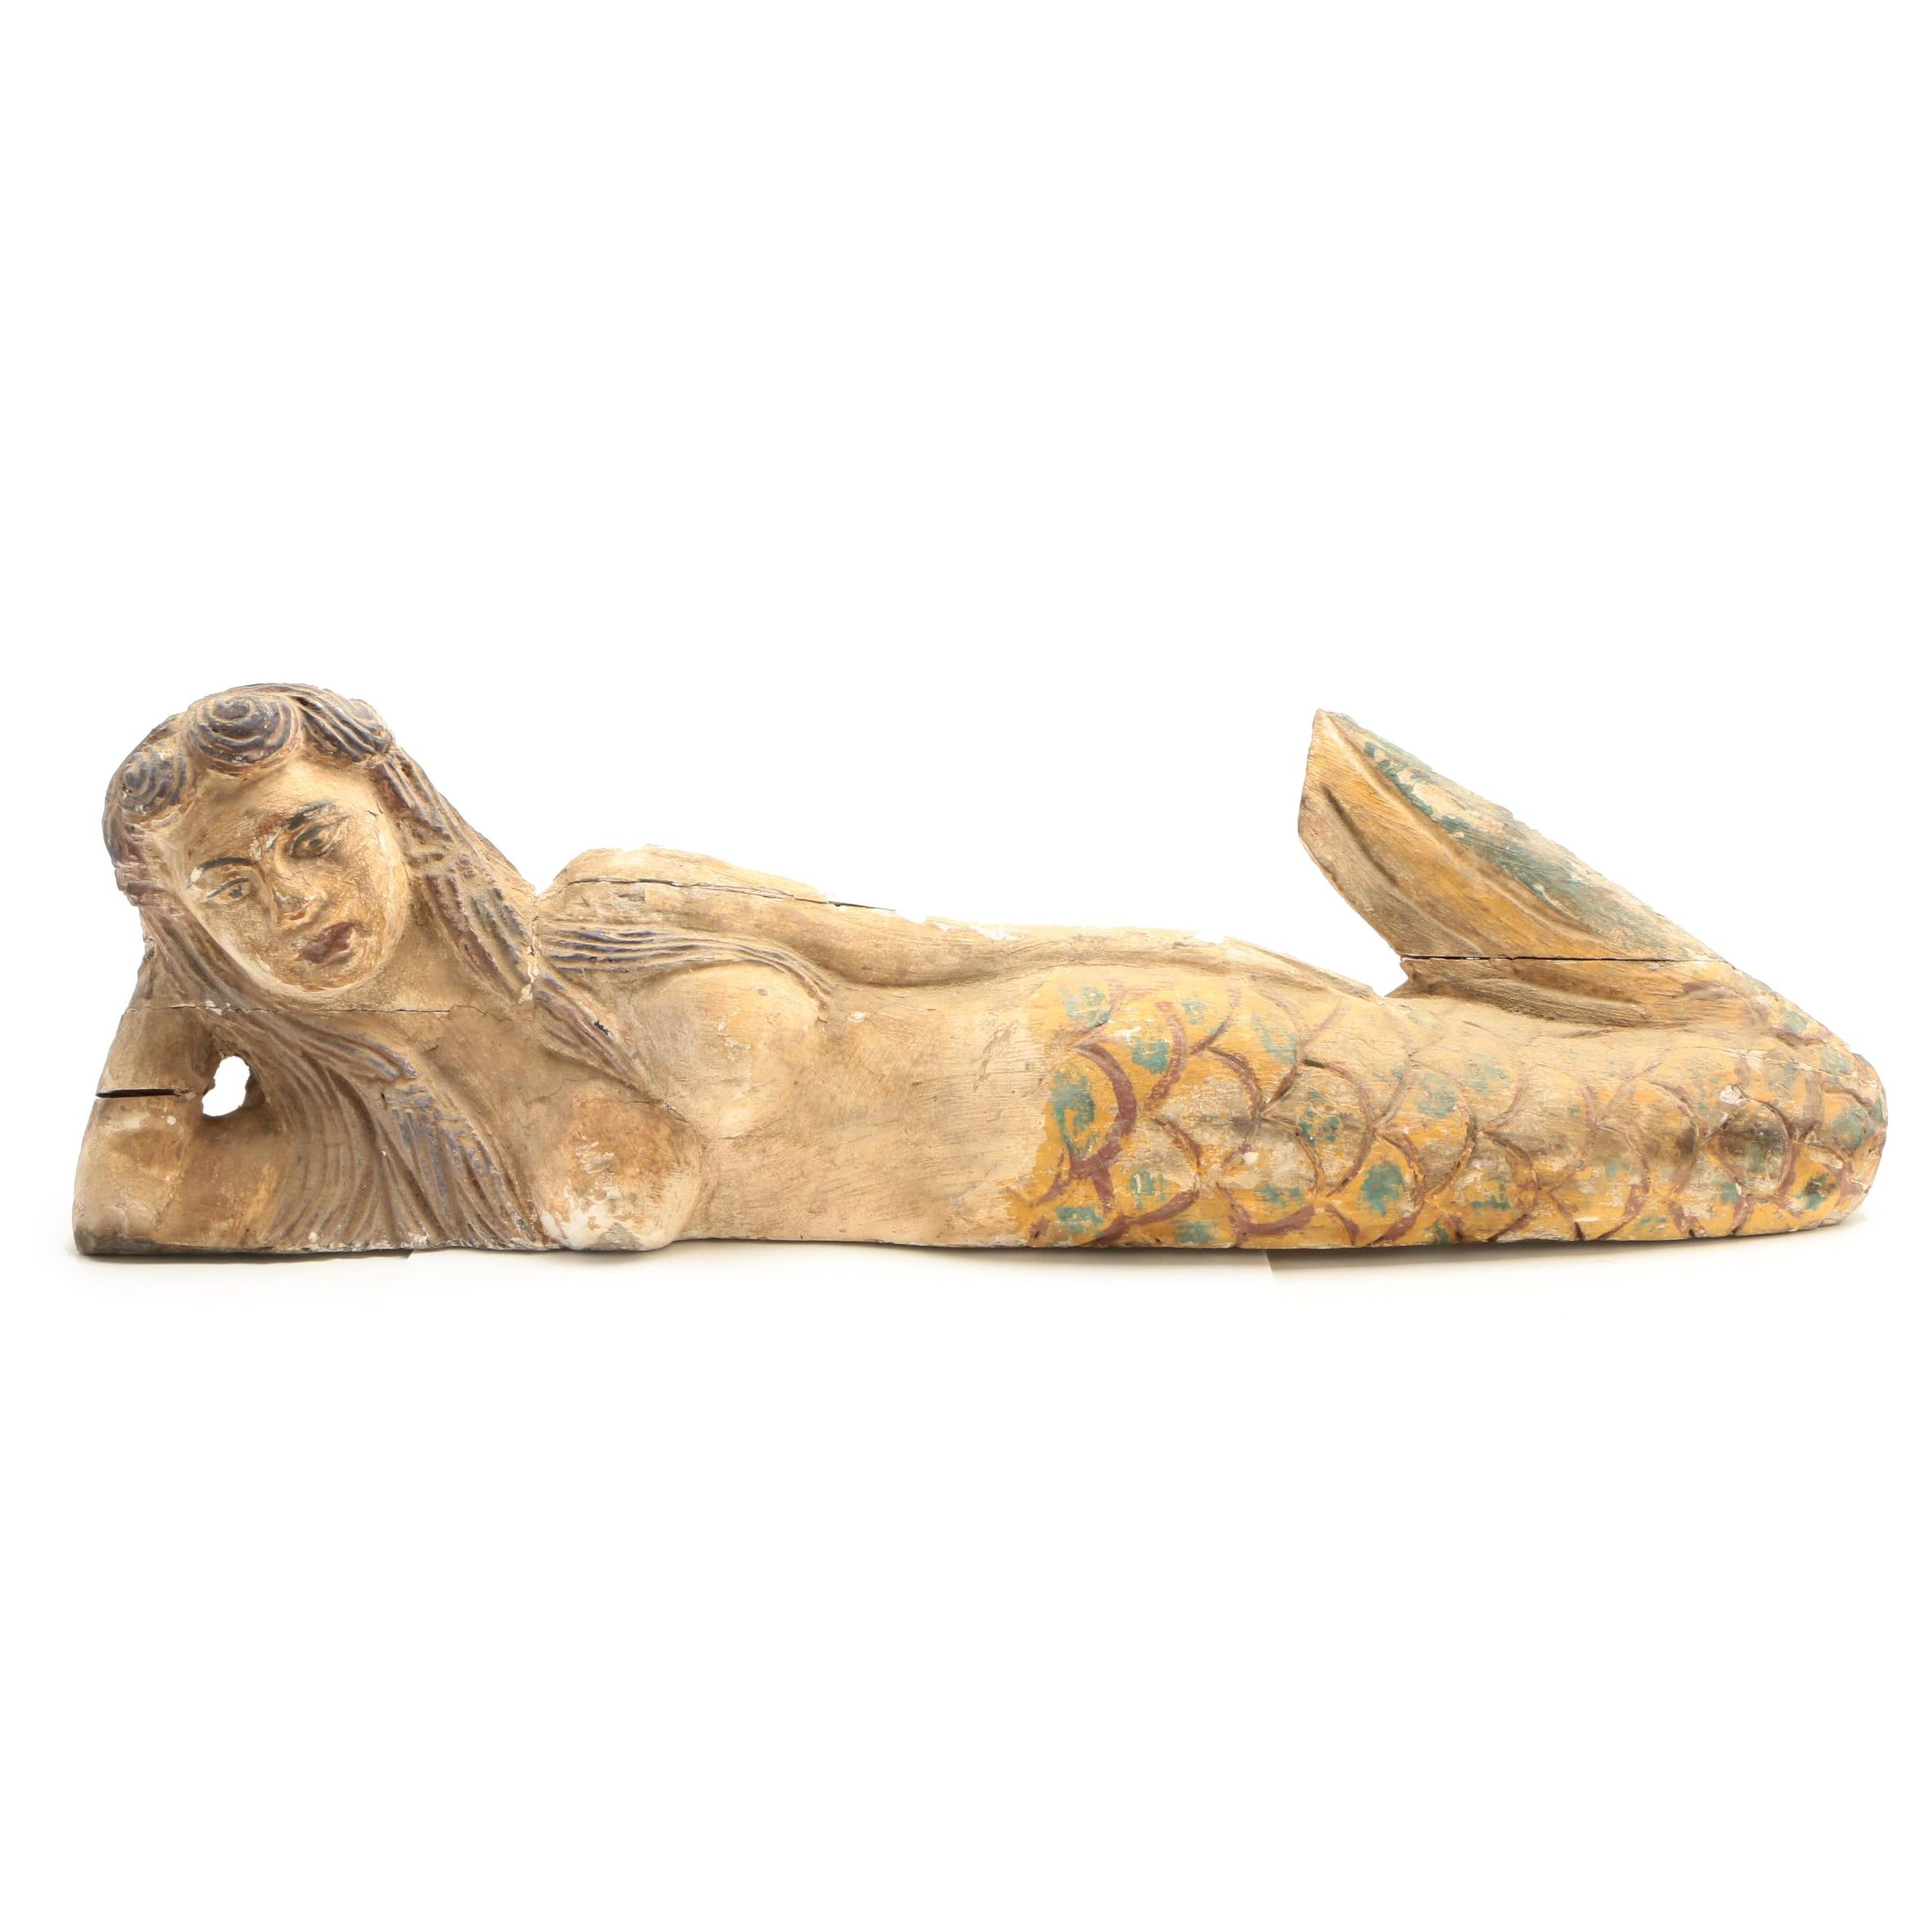 Folk Art Style Carved and Polychromed Wooden Mermaid Statuette